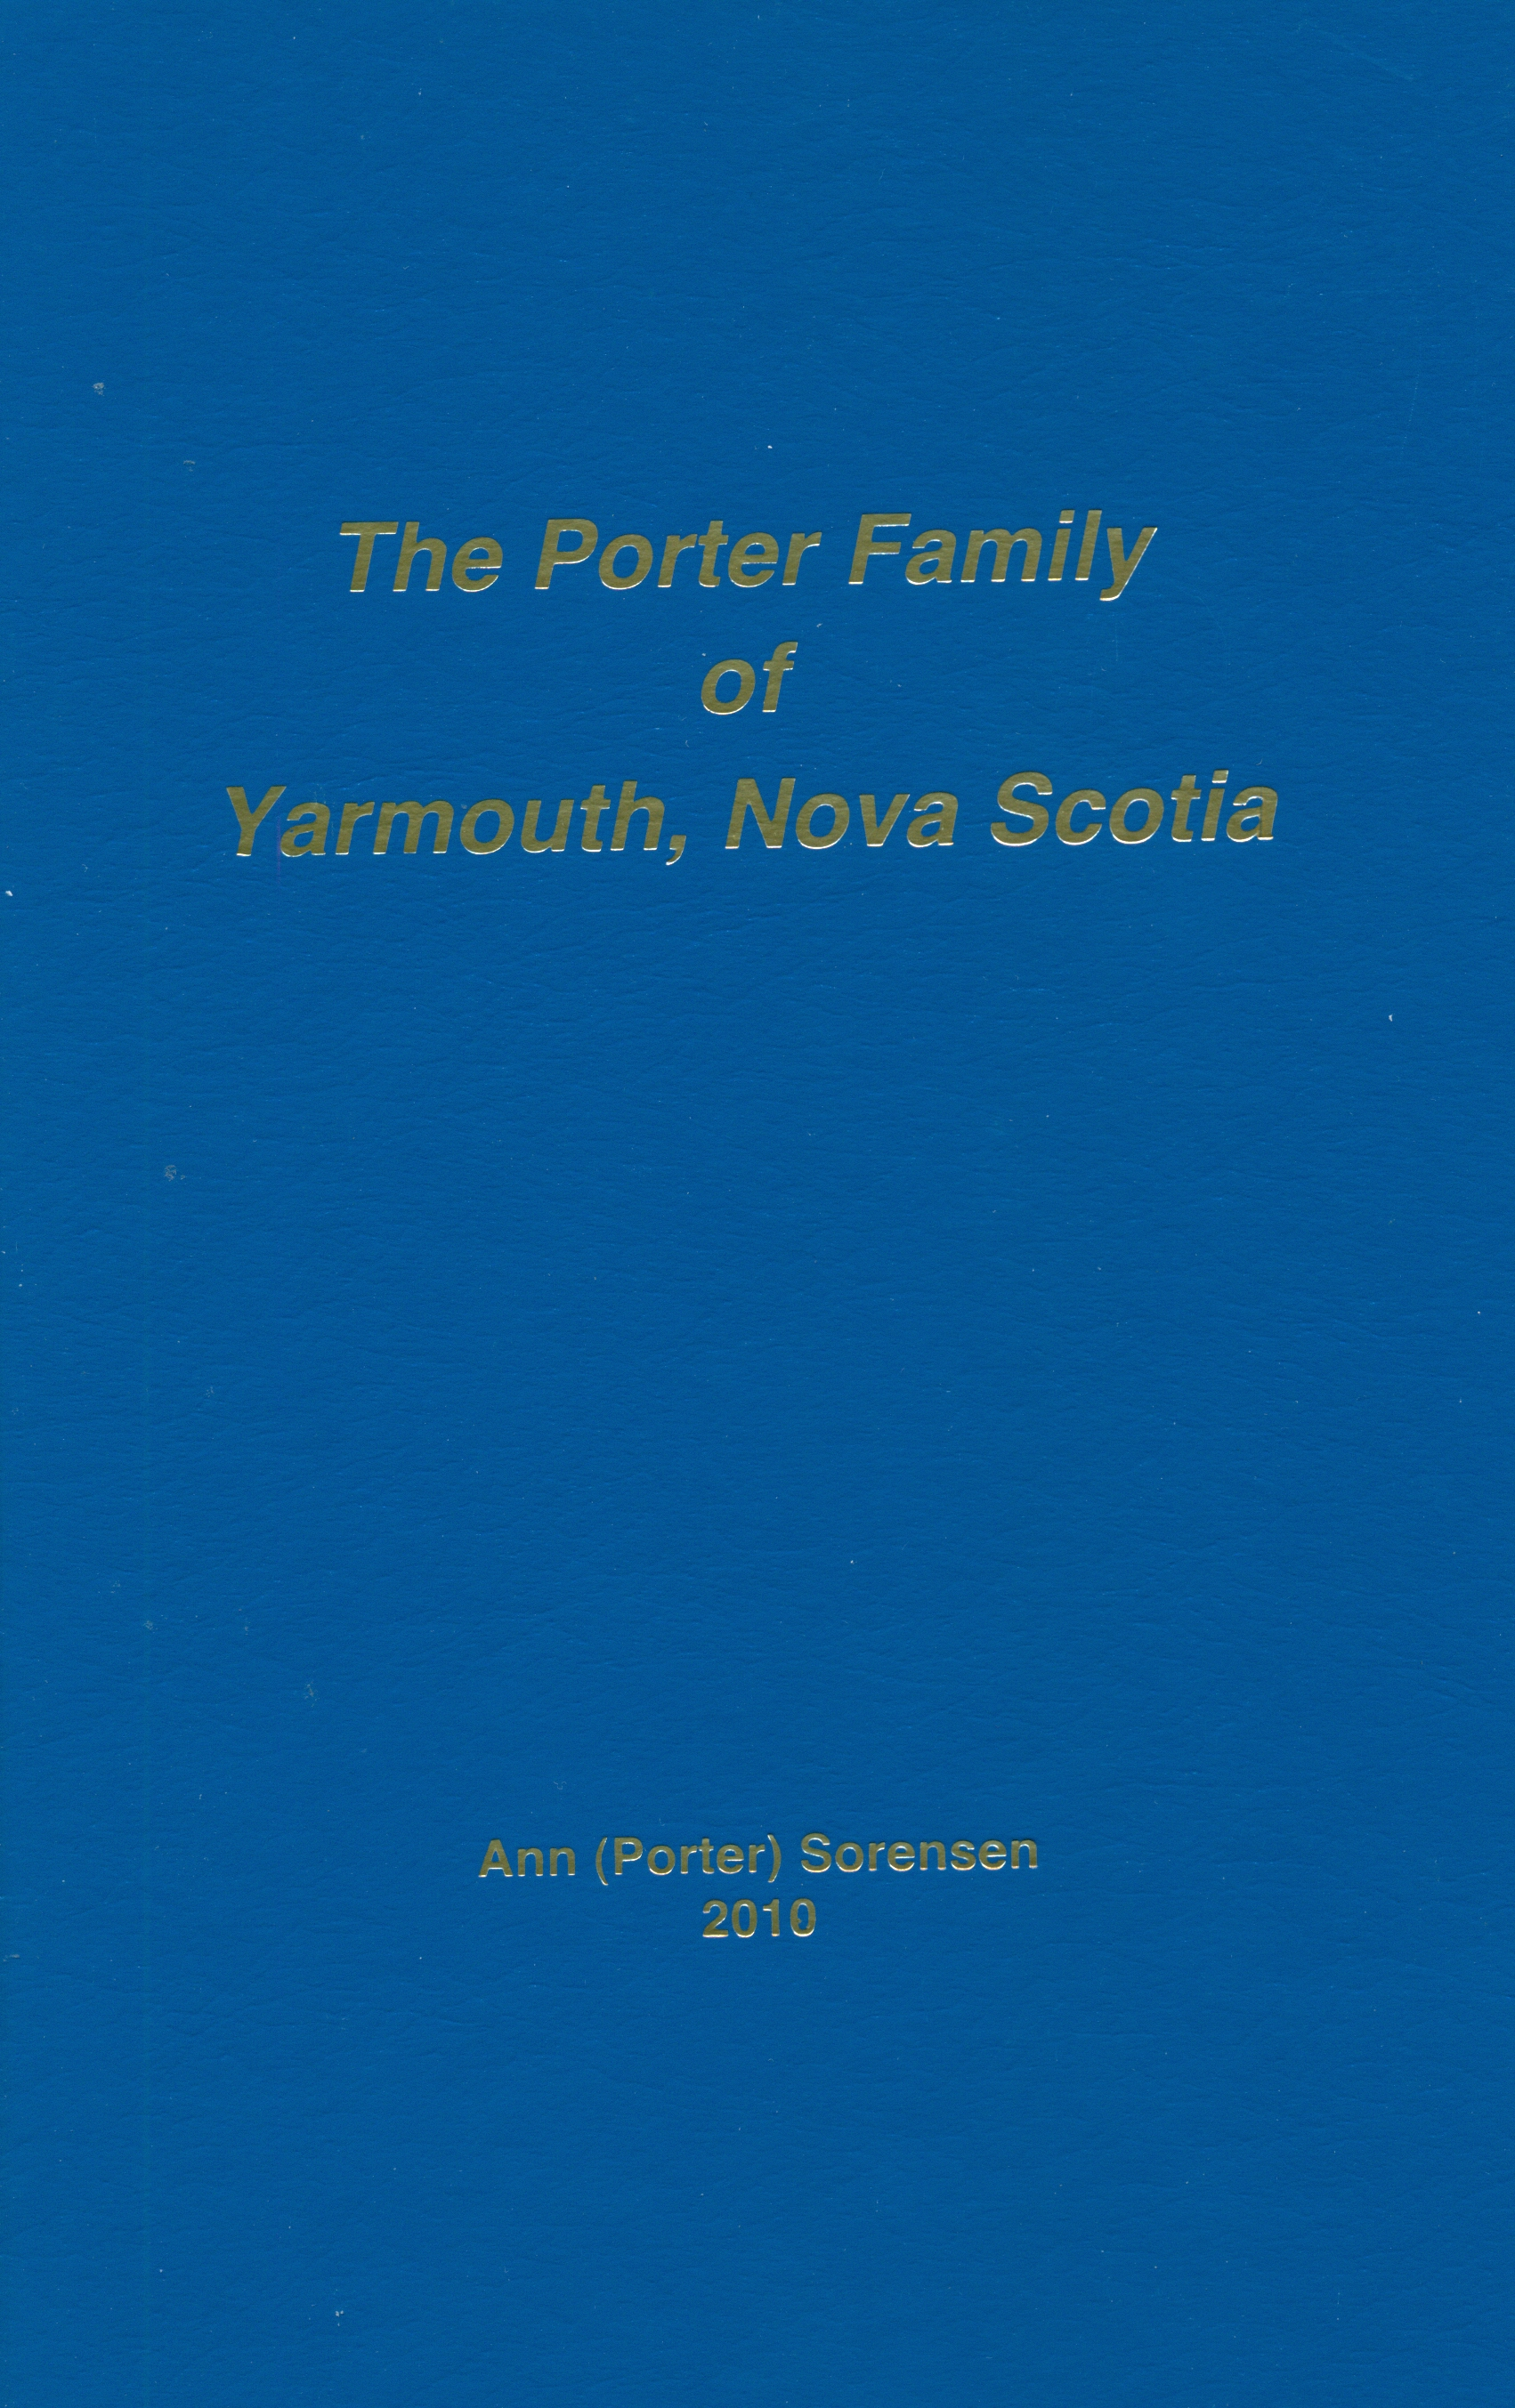 The Porter Family of Yarmouth, NS